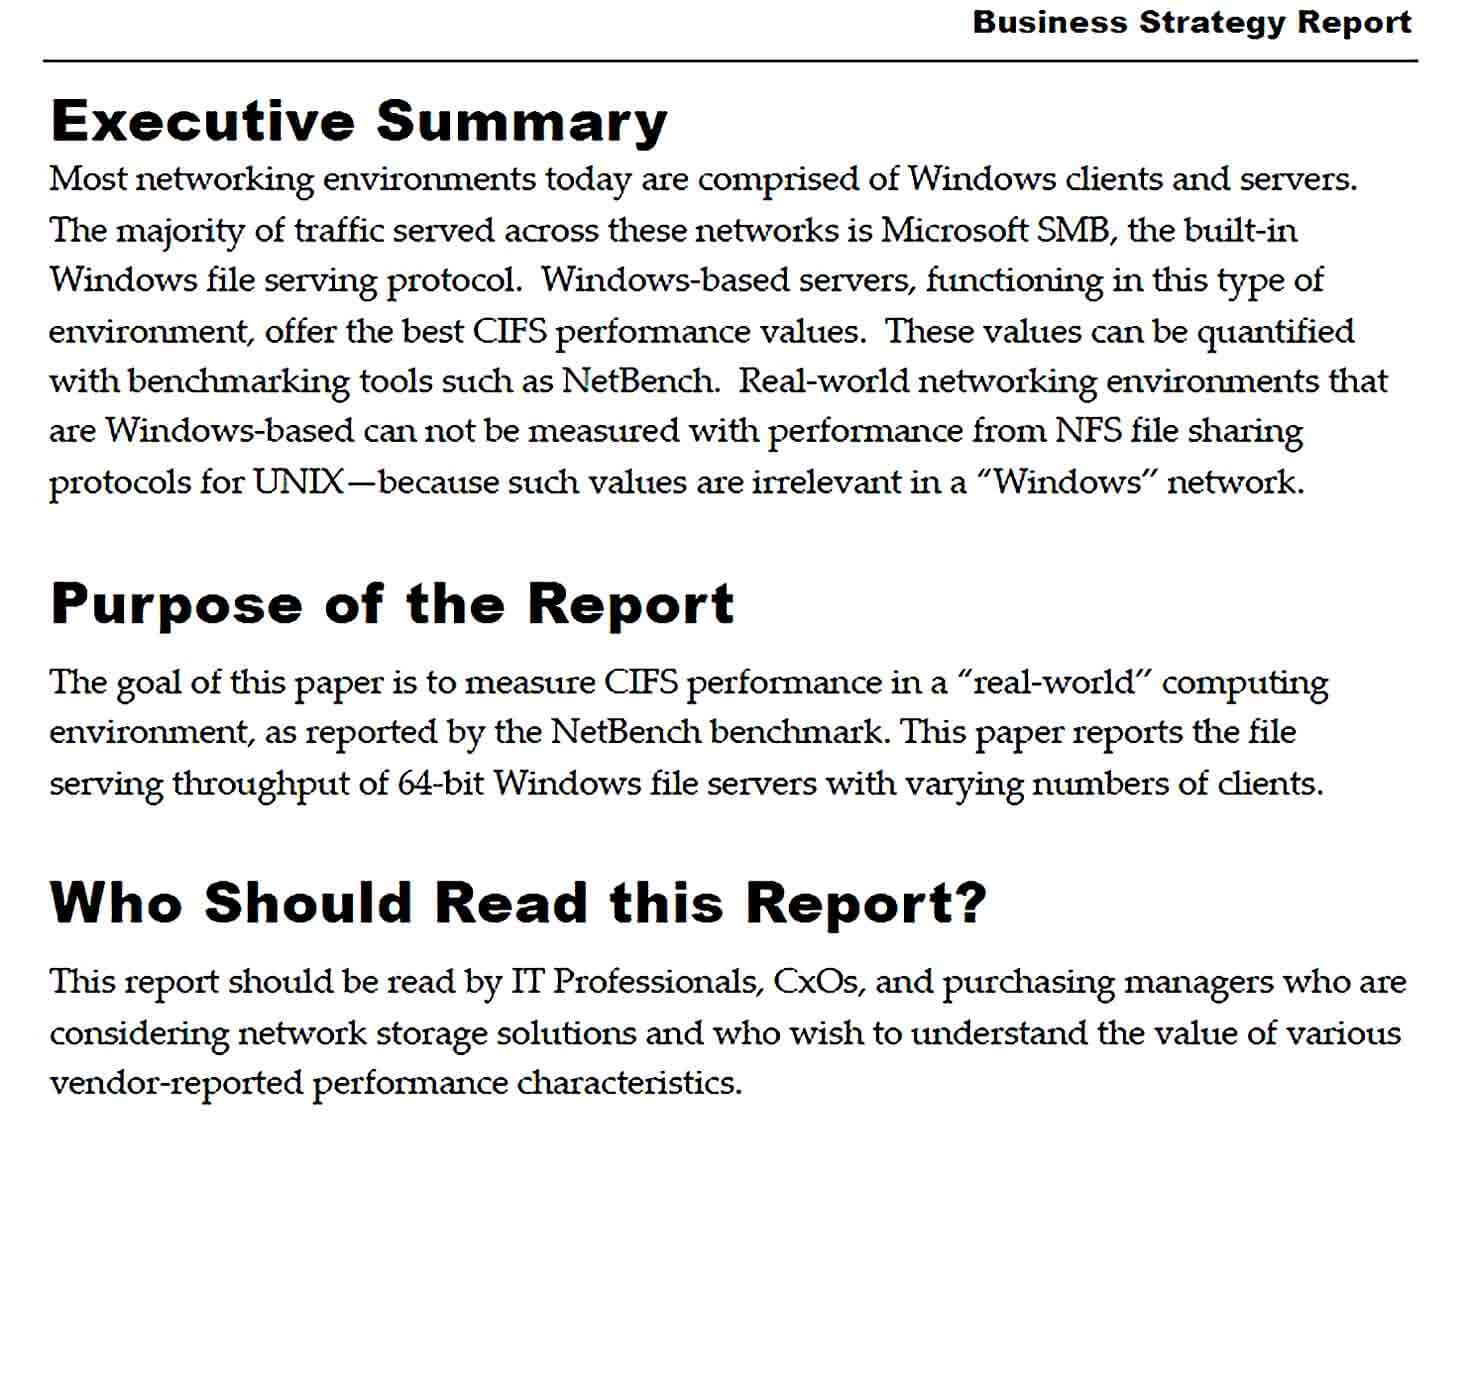 Sample Business Strategy Report Template